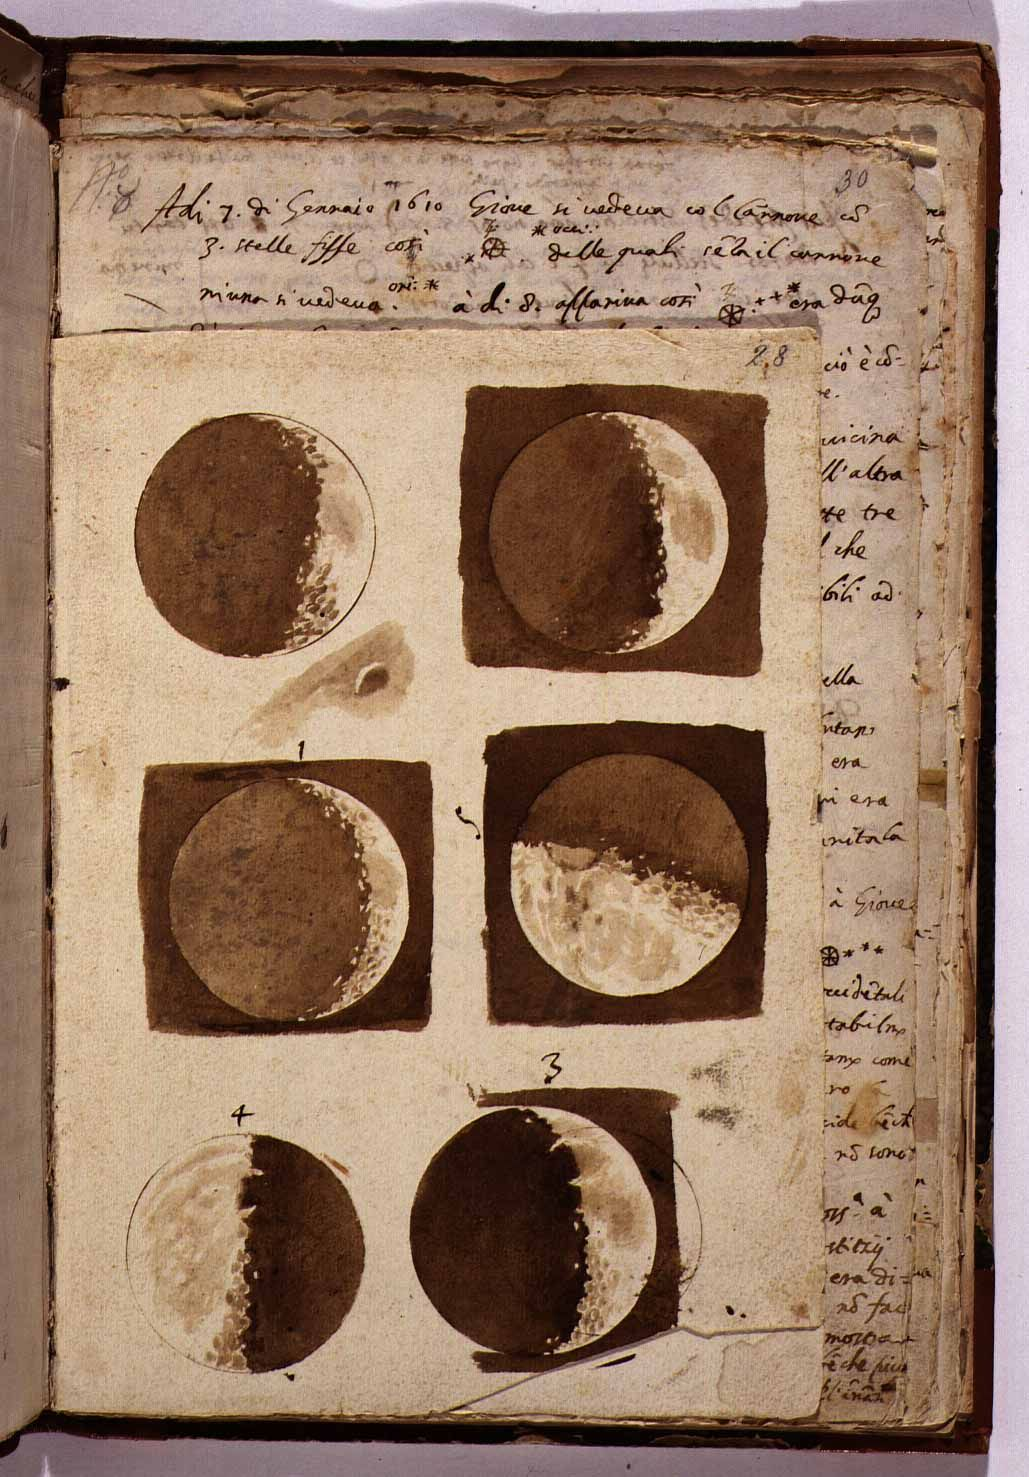 Libros De Galileo Drawings Of The Moon By Galileo Galilei January 7 1610 Libros